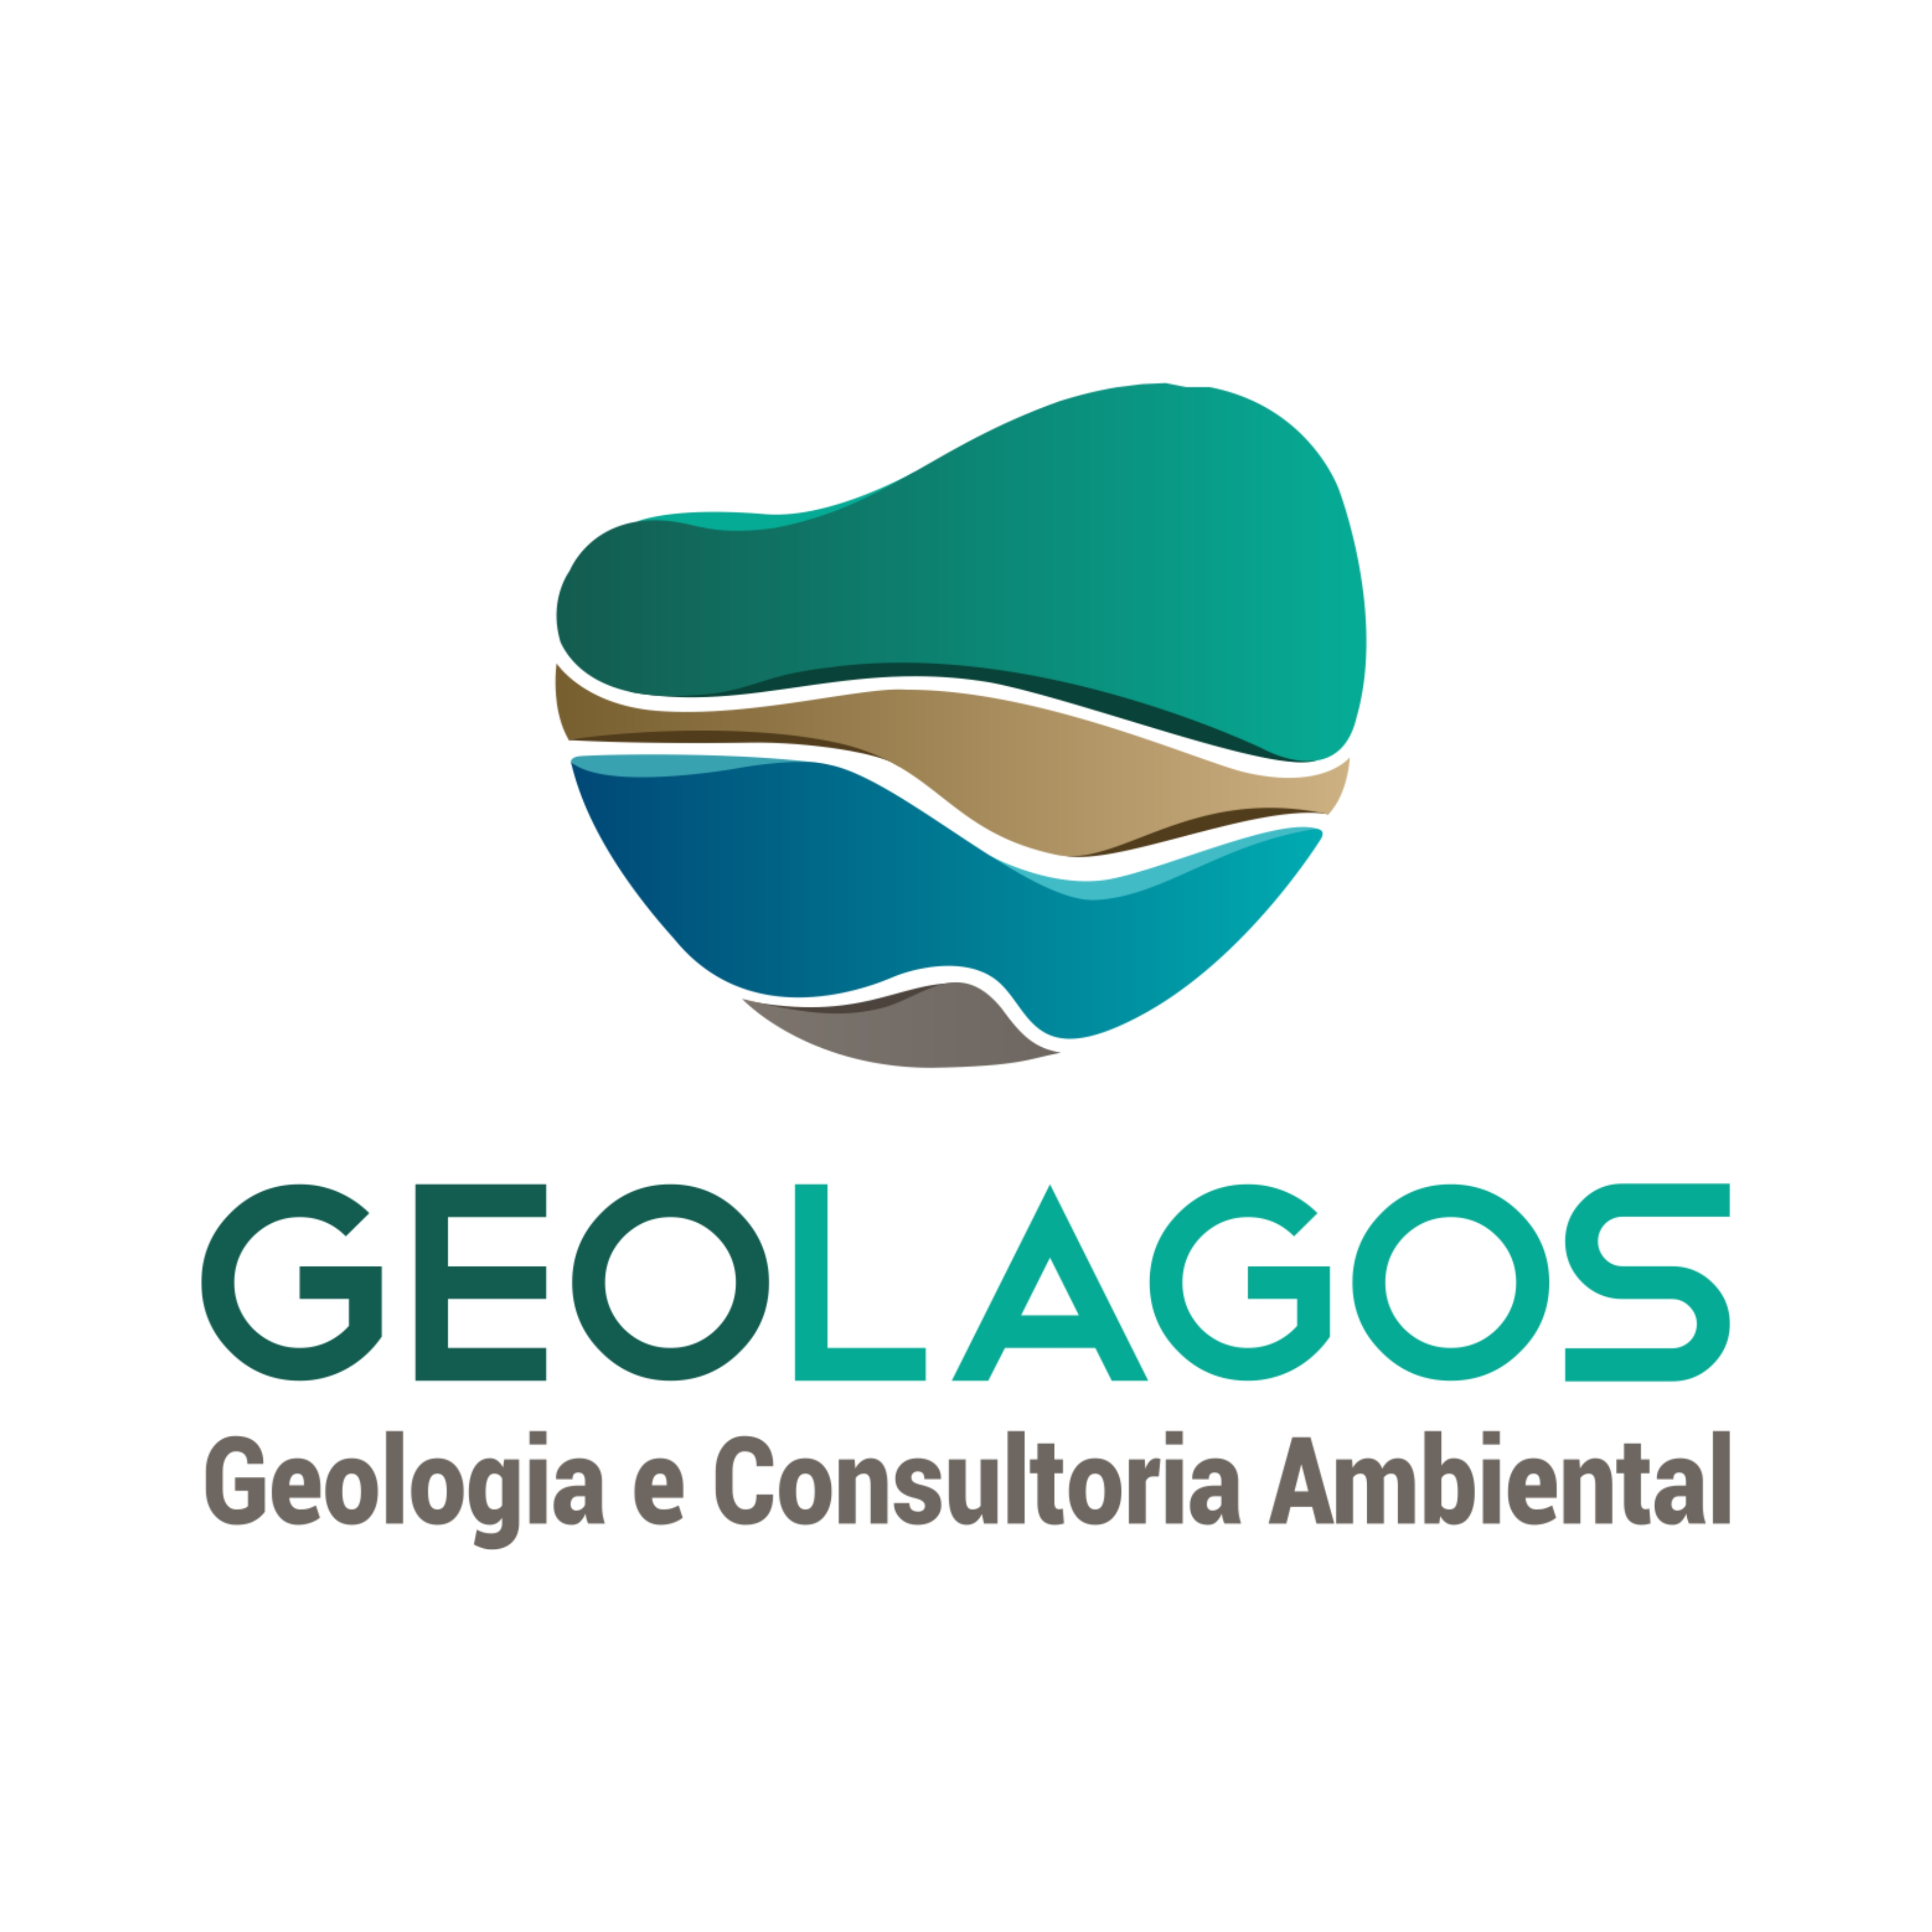 Geolagos